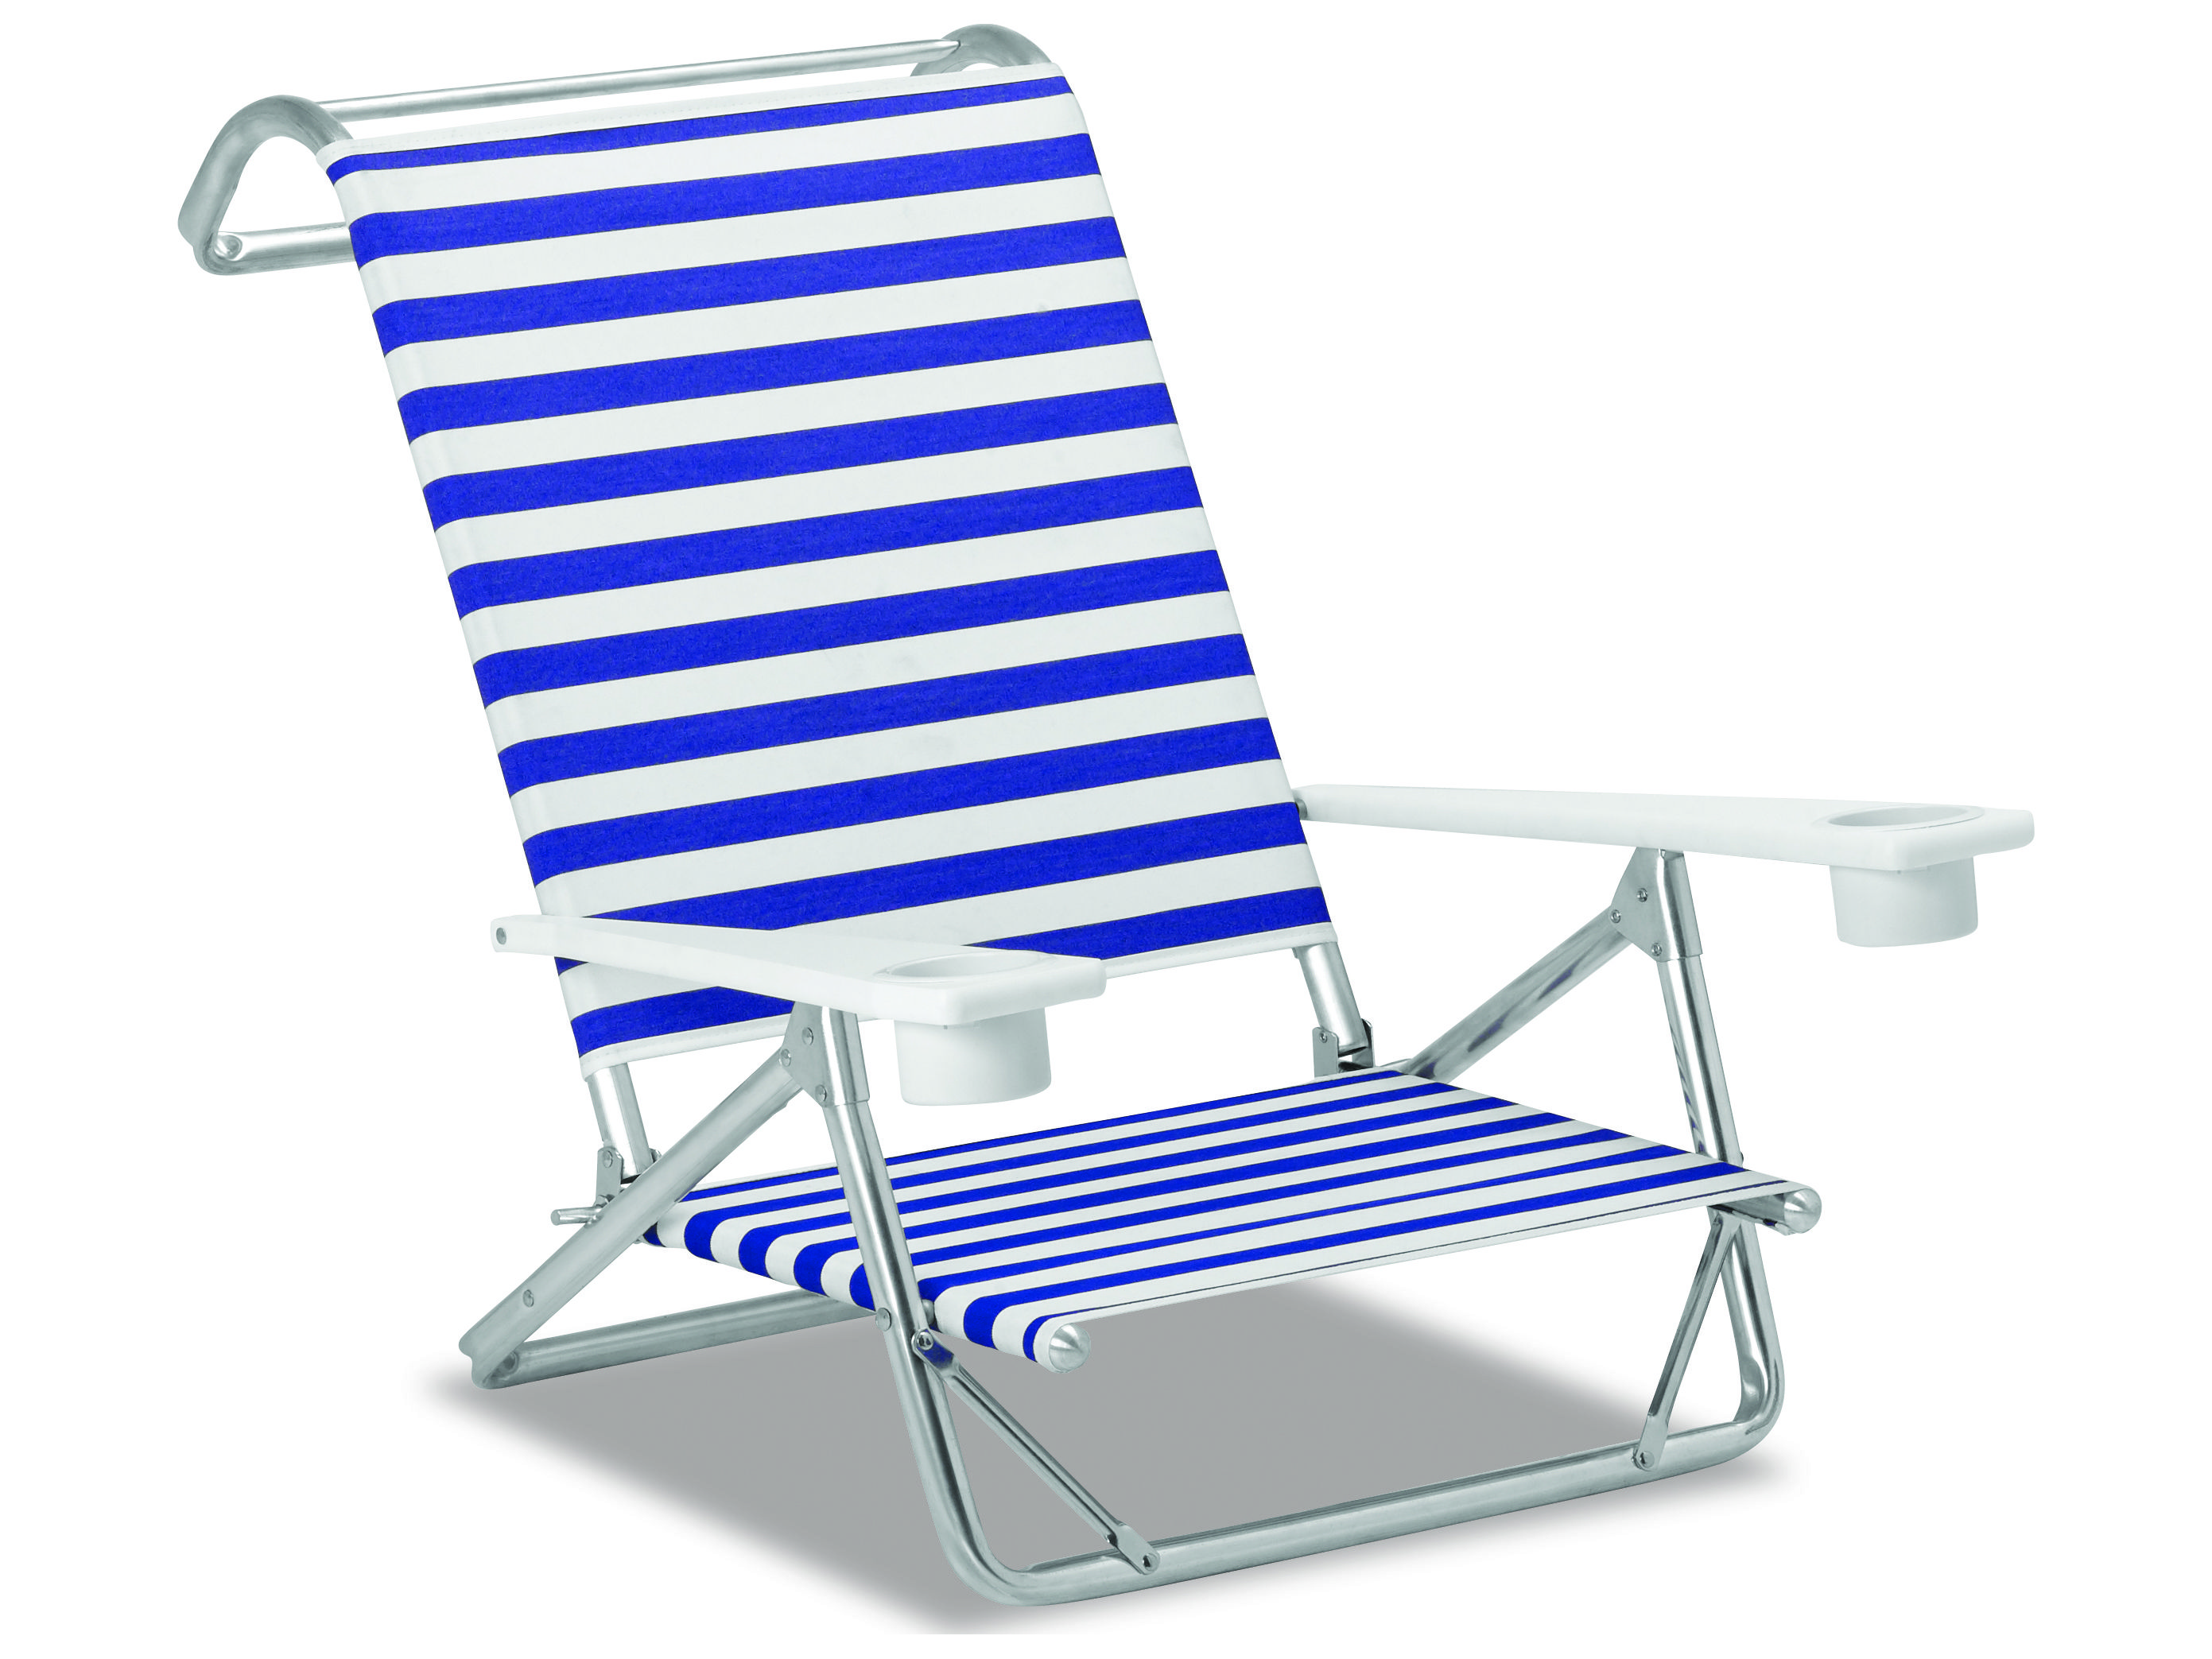 Cheap Beach Chairs Office Chair For Lower Back Pain Stable Wooden Folding And Camping